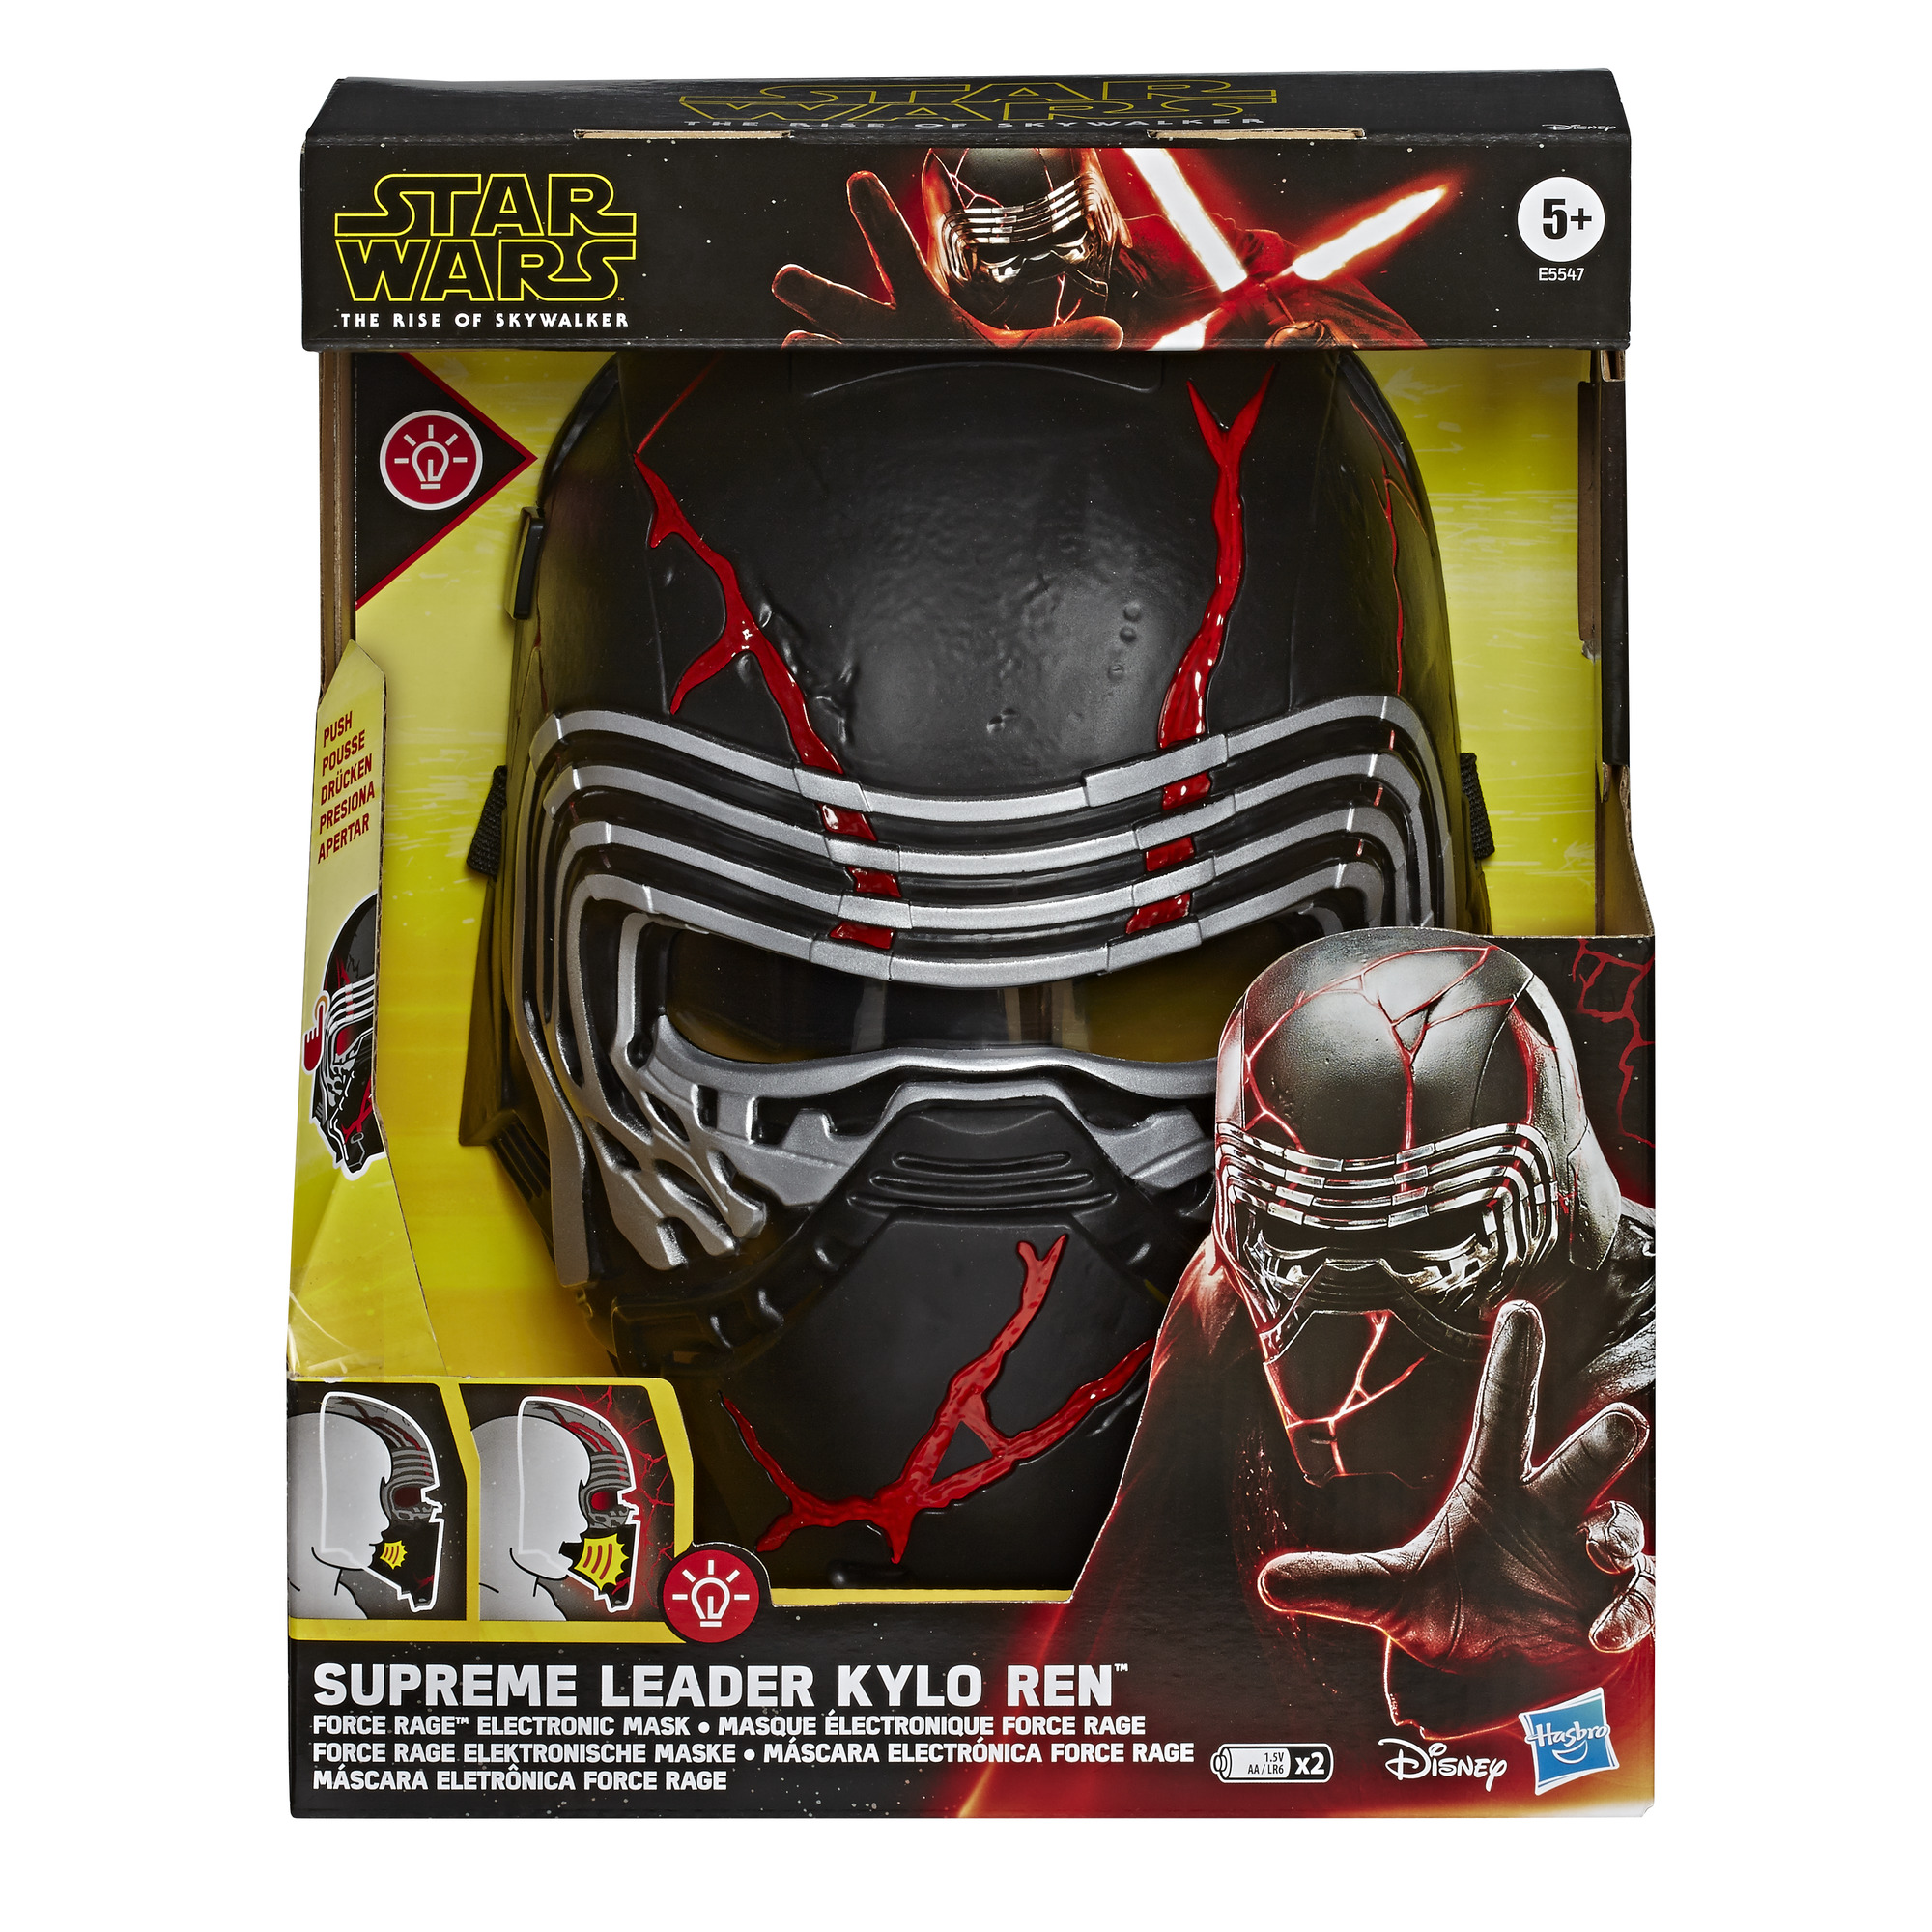 Star Wars Kylo Ren Electronic Mask Voice Changer Change Role Play Episode 8 The Last Jedi